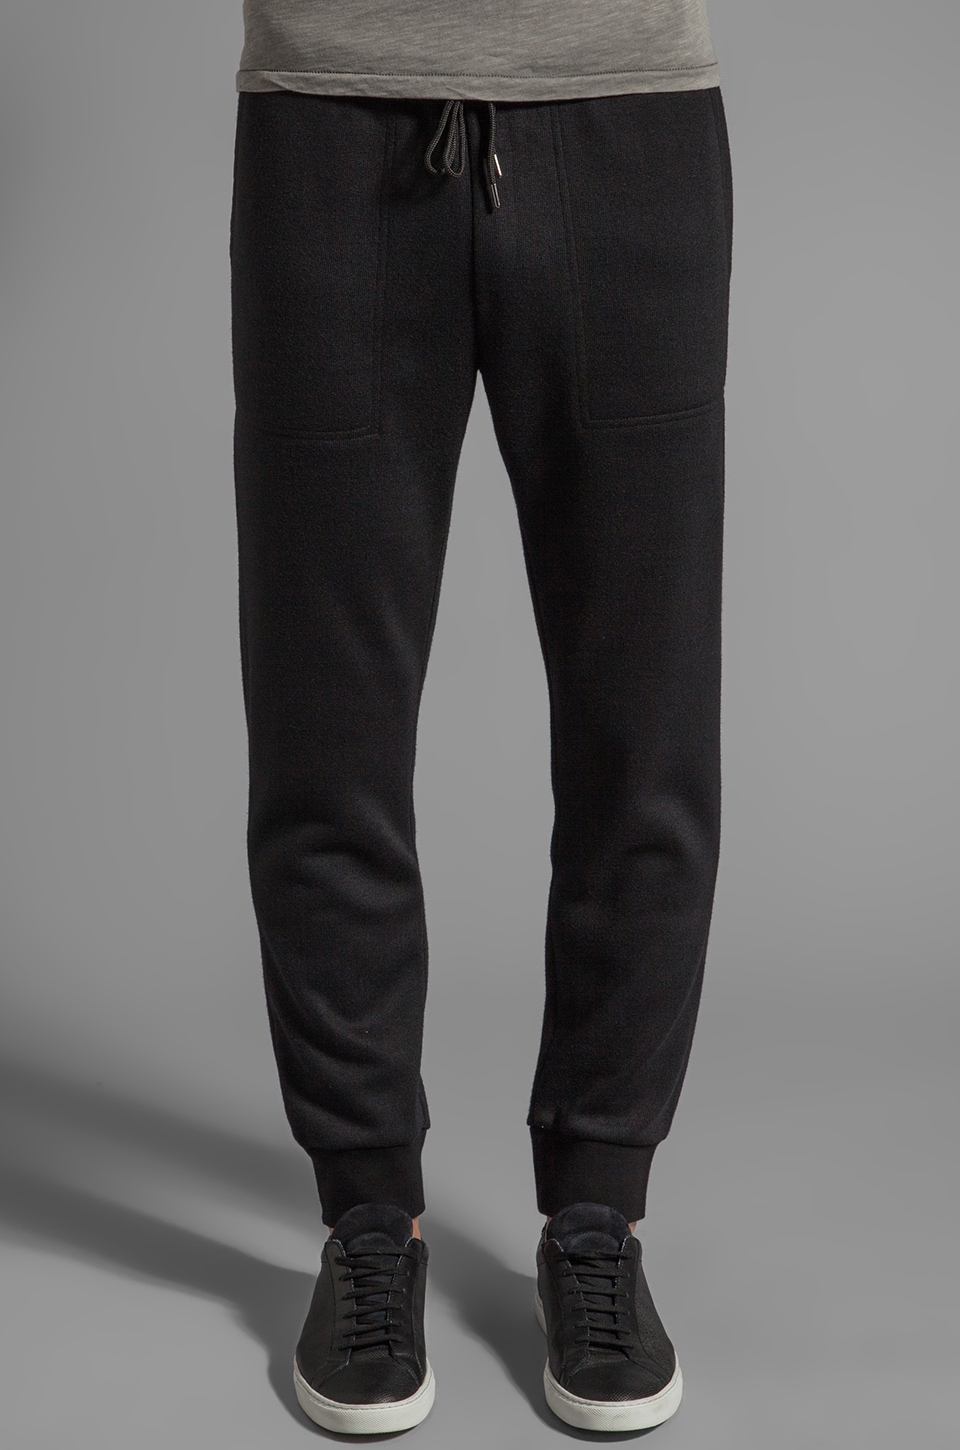 Theory Gavril Pant in Black